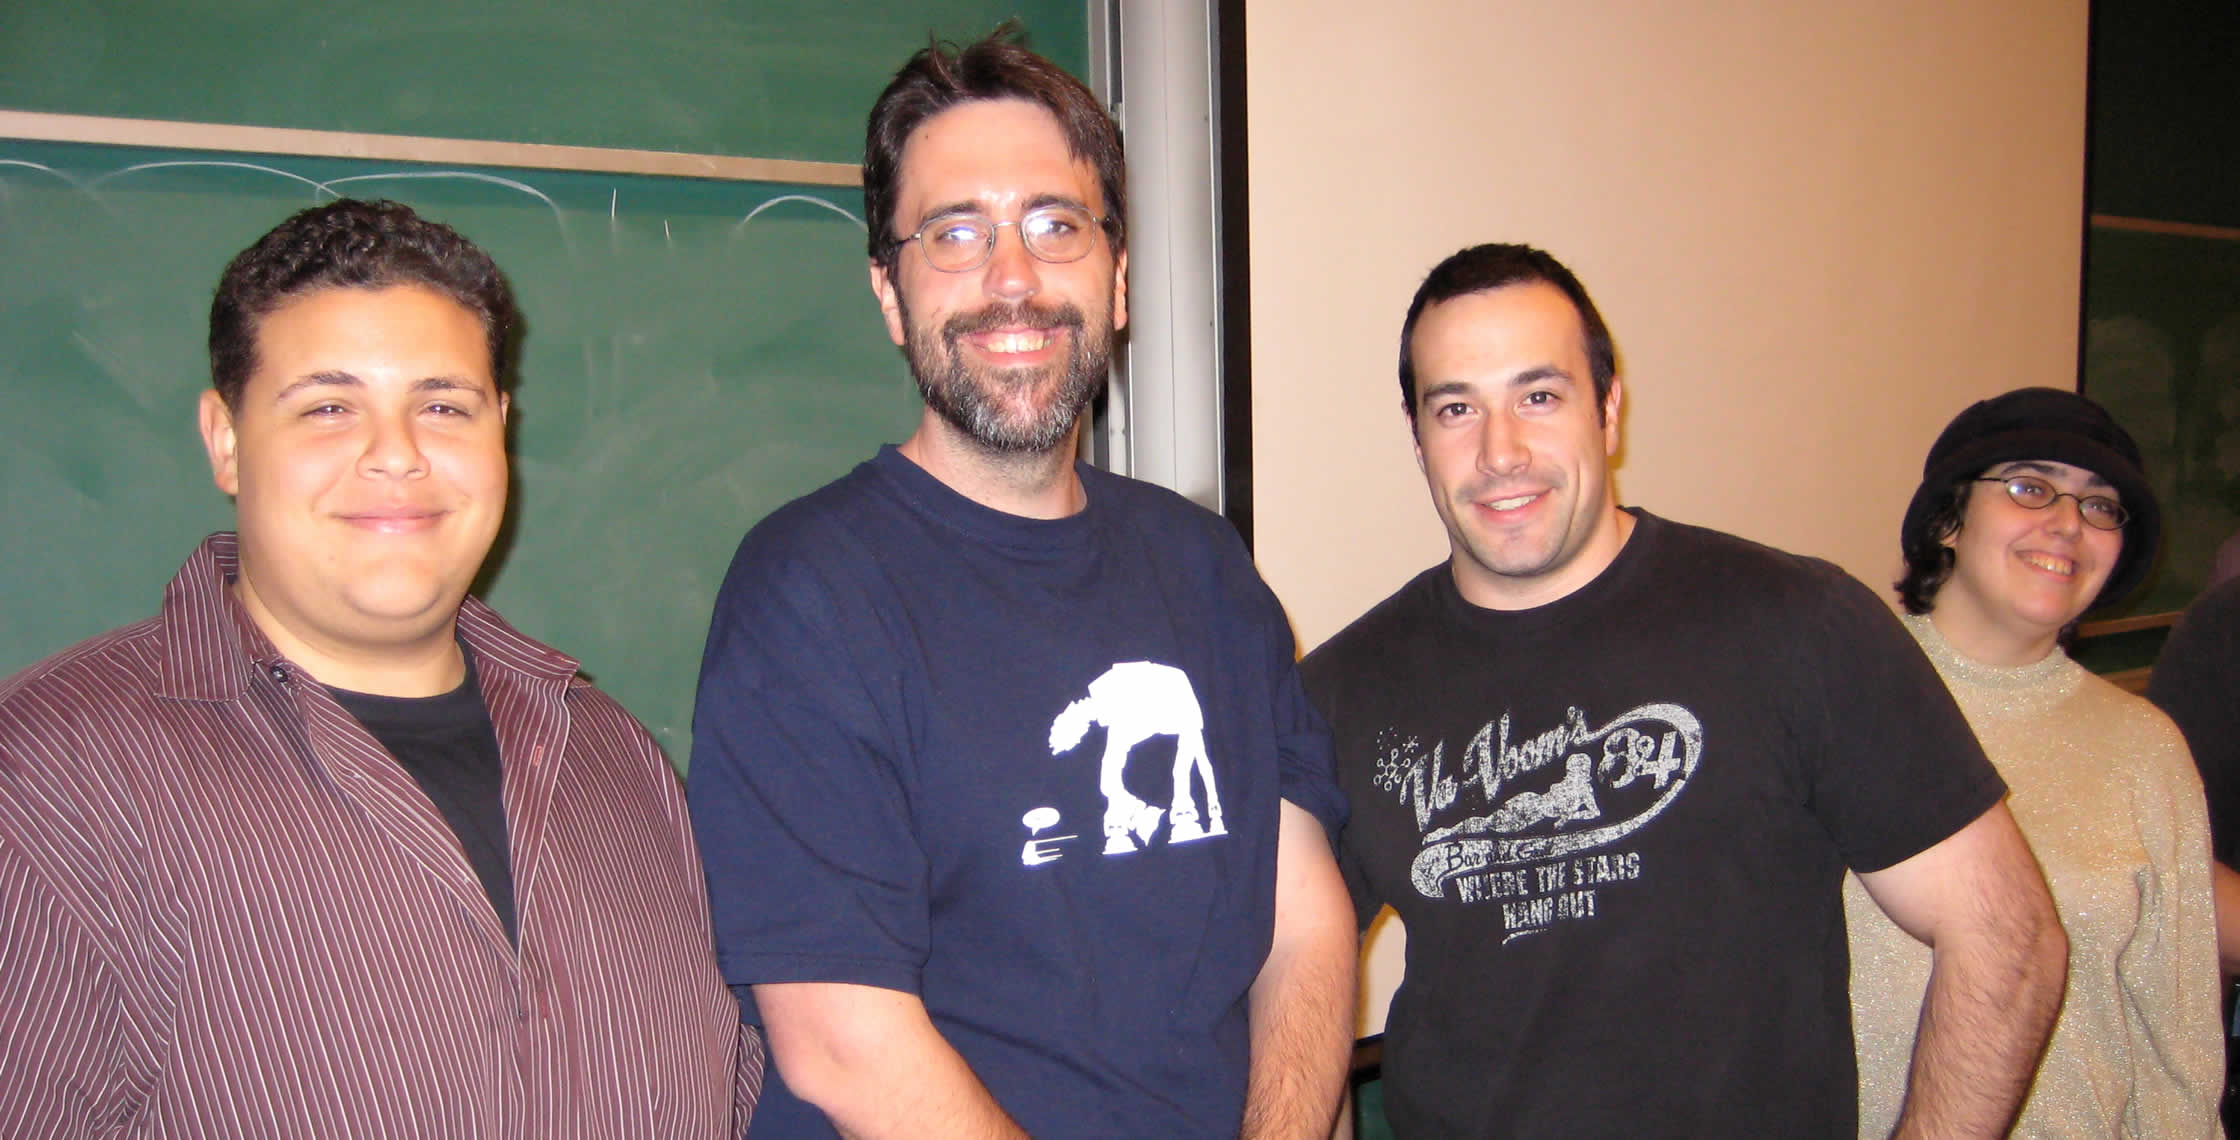 Ben Nadel at the New York ColdFusion User Group (Feb. 2008) with: Clark Valberg and Ray Camden and Judith Dinowitz